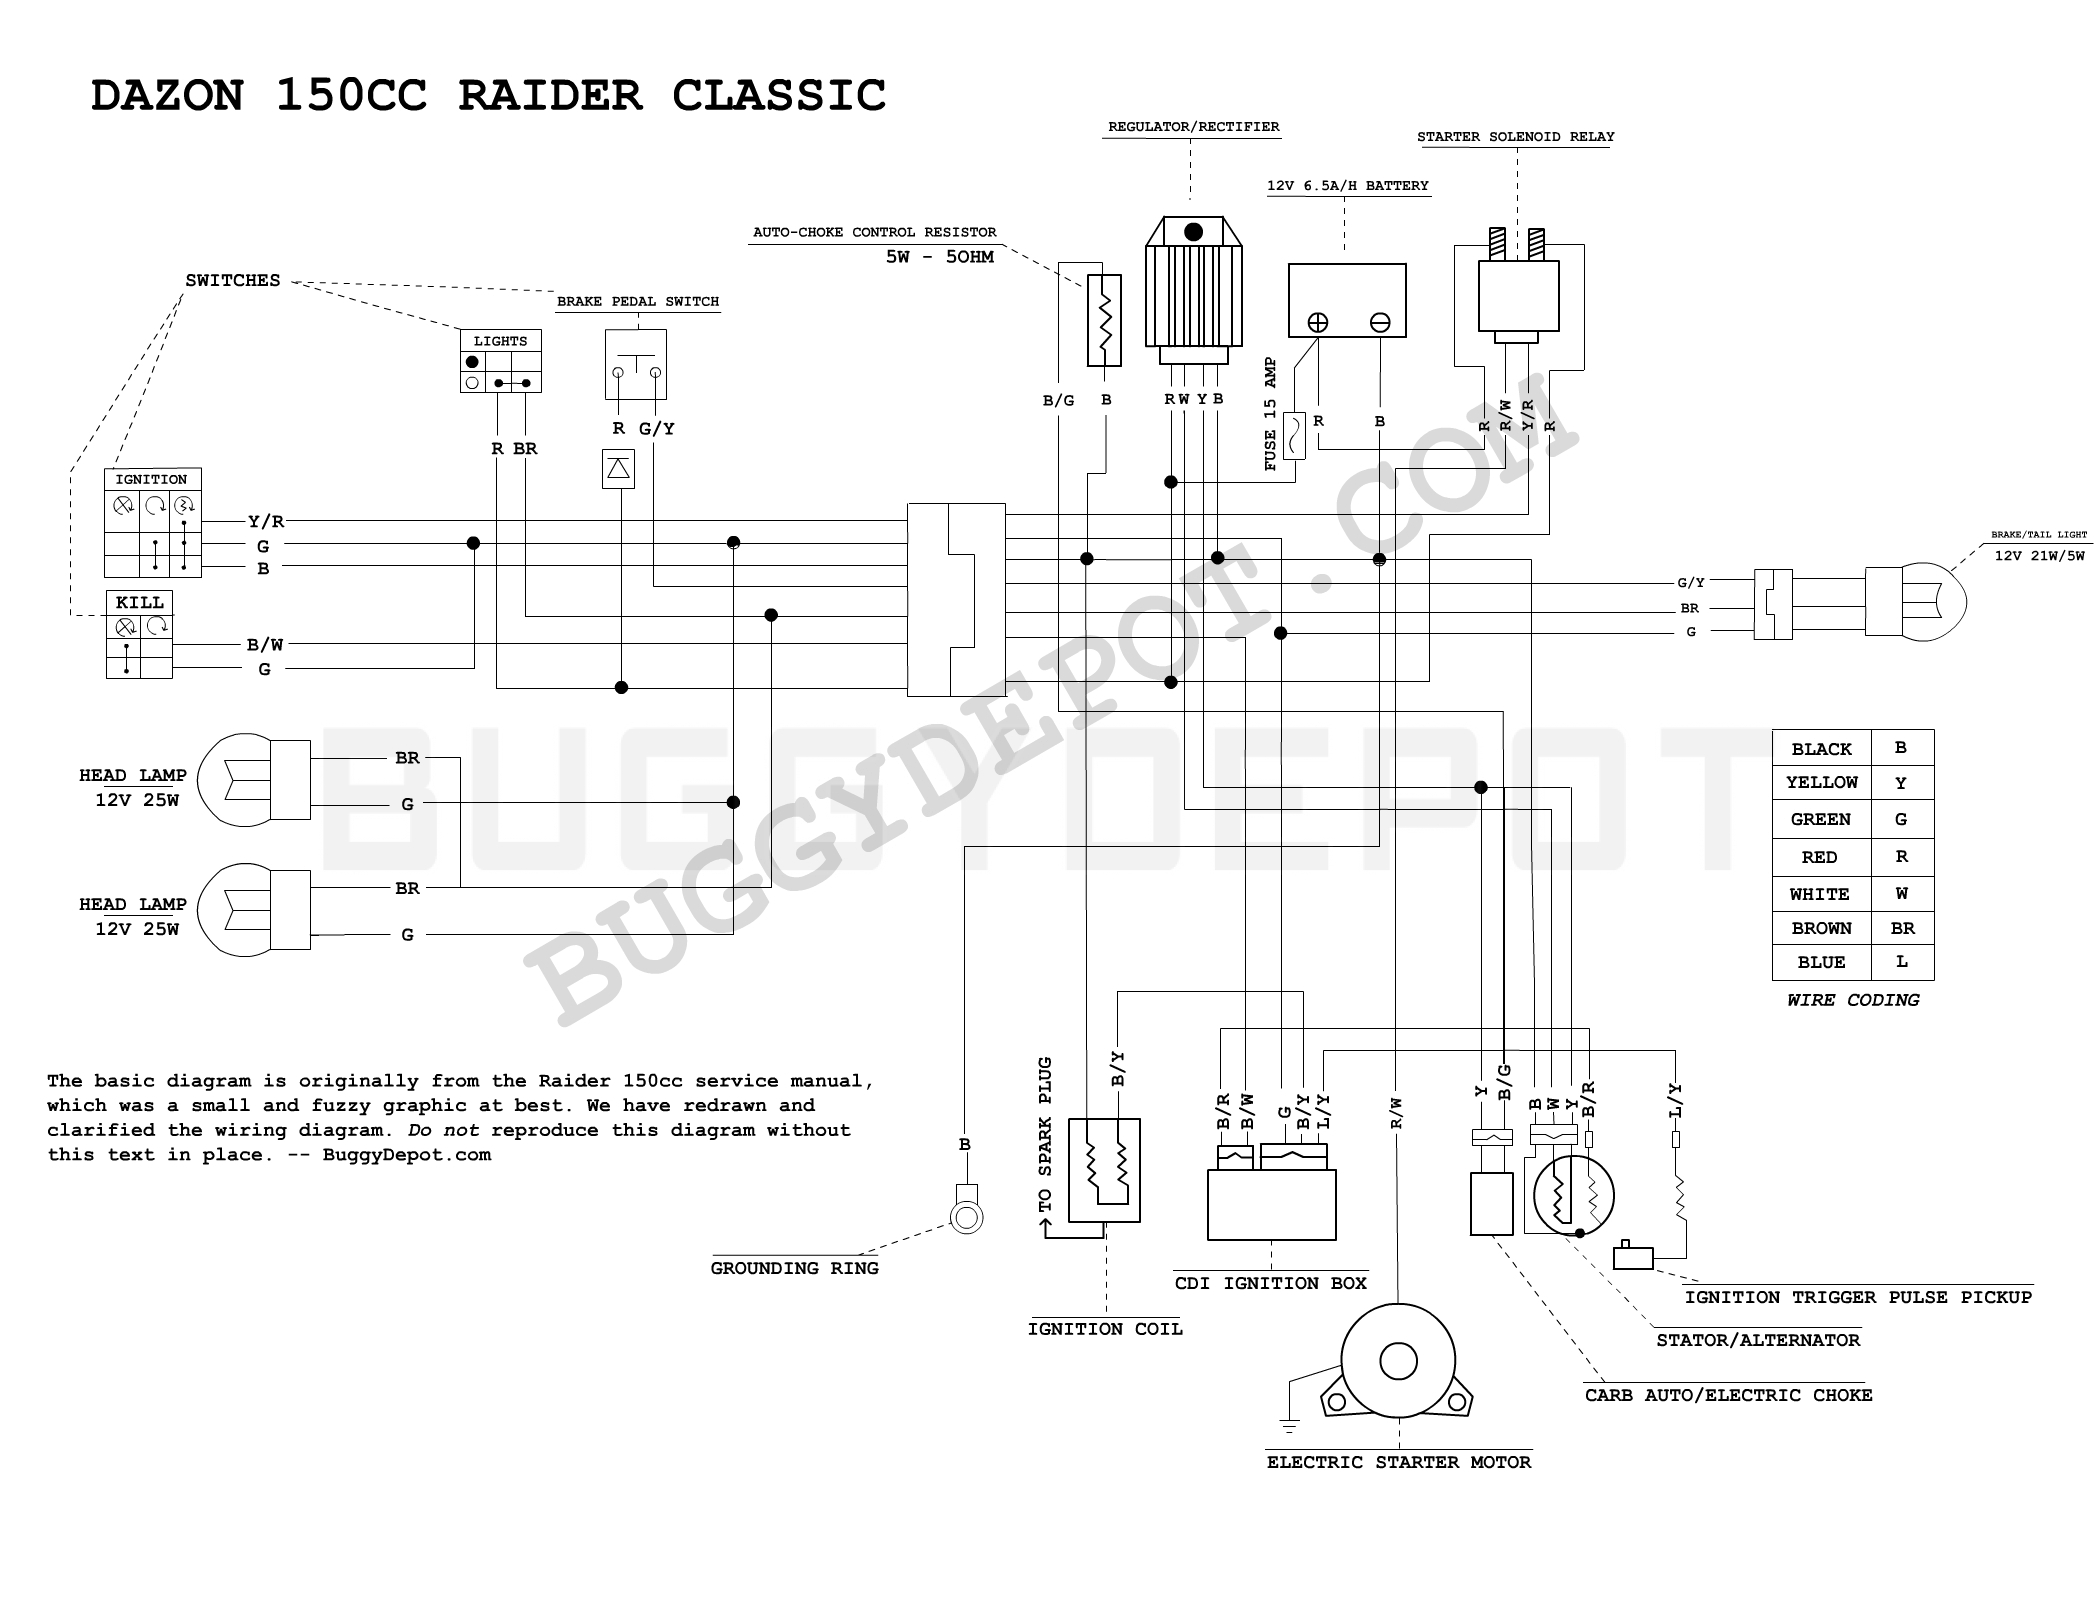 article_33_1278205207 gy6 150cc ignition troubleshooting guide no spark? buggy depot 2006 big dog wiring diagram at pacquiaovsvargaslive.co